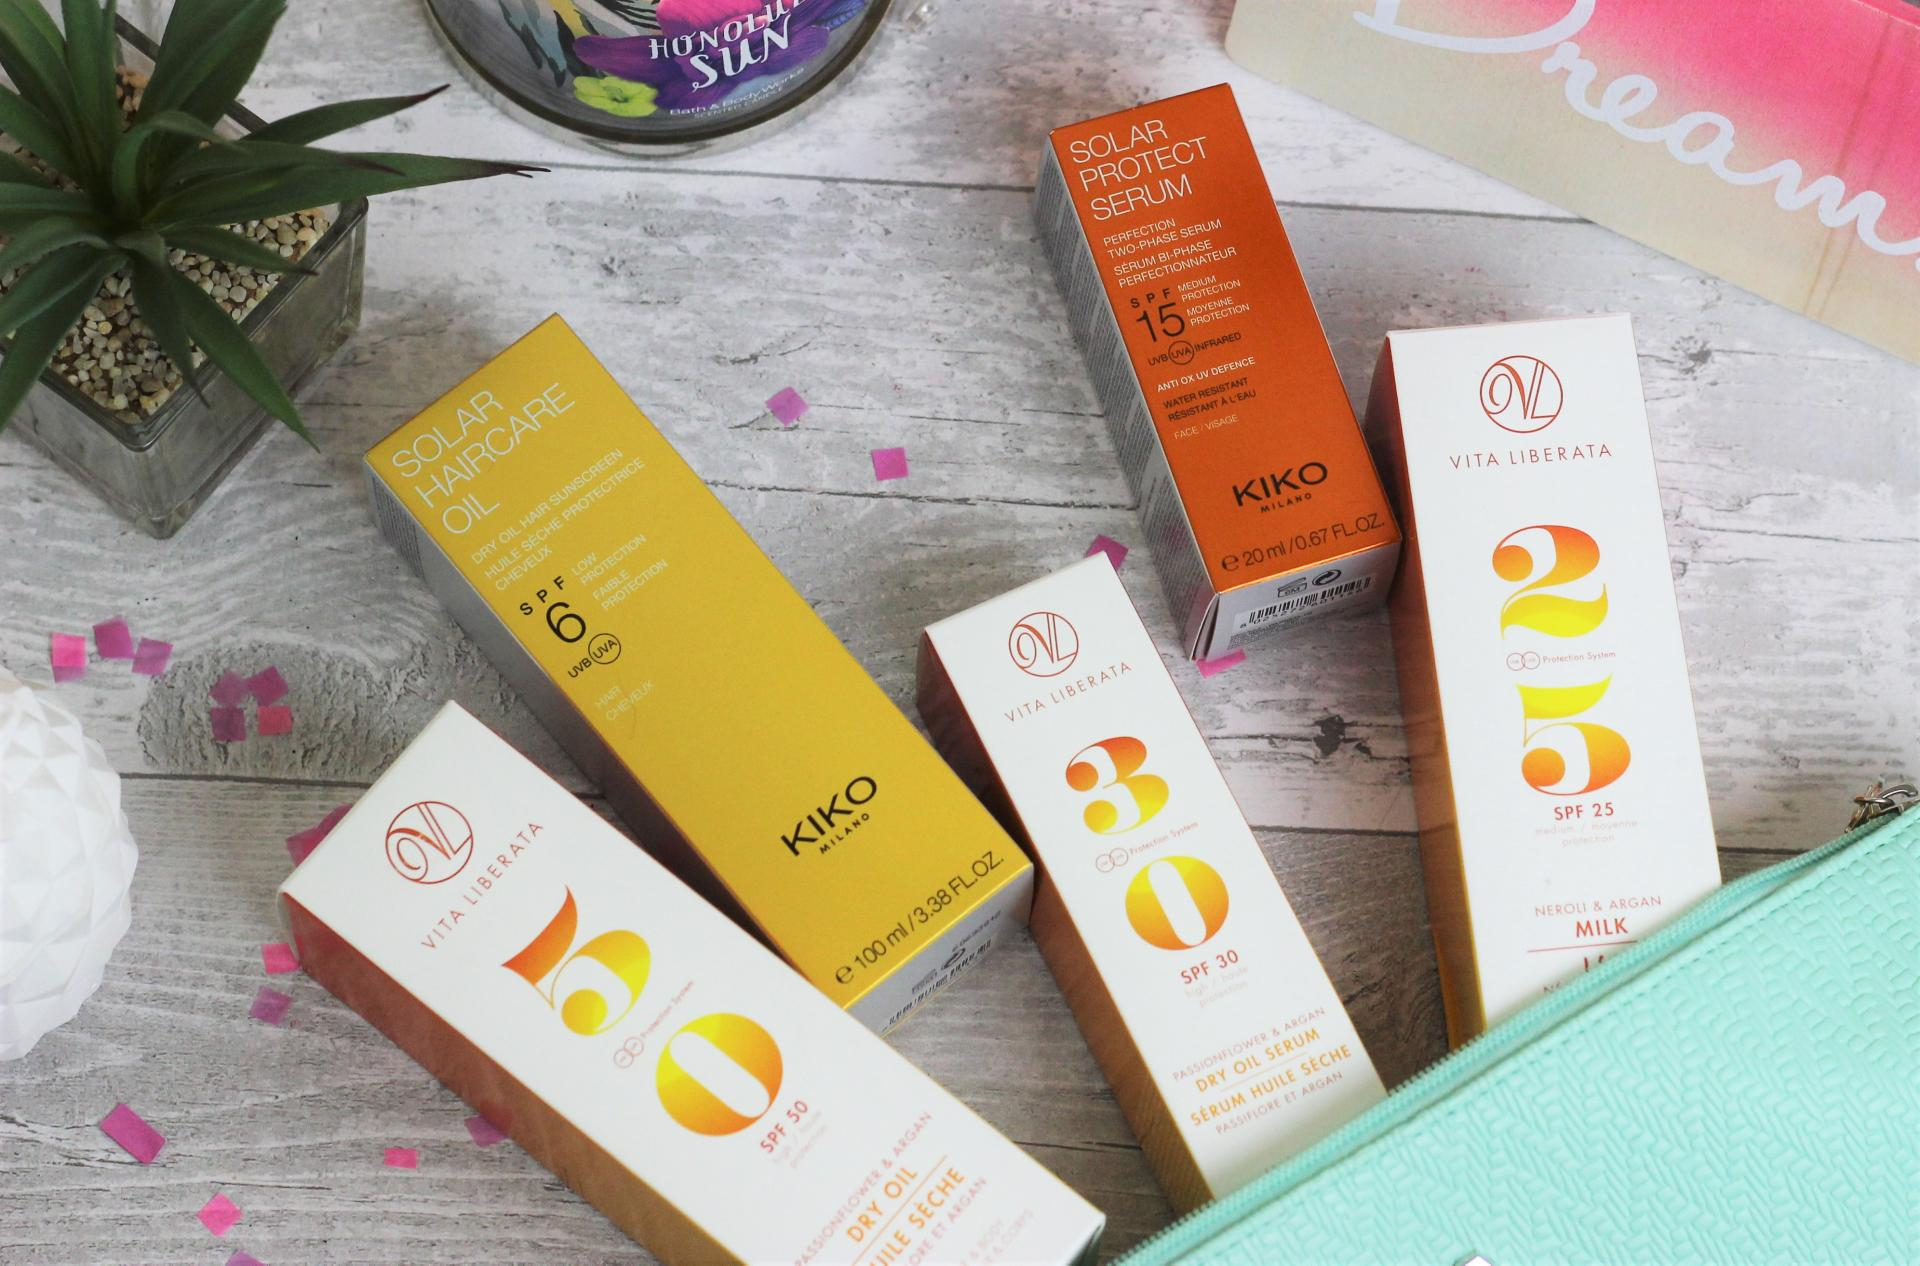 Sun Protection - Staying Safe with SPF  Vita Liberata